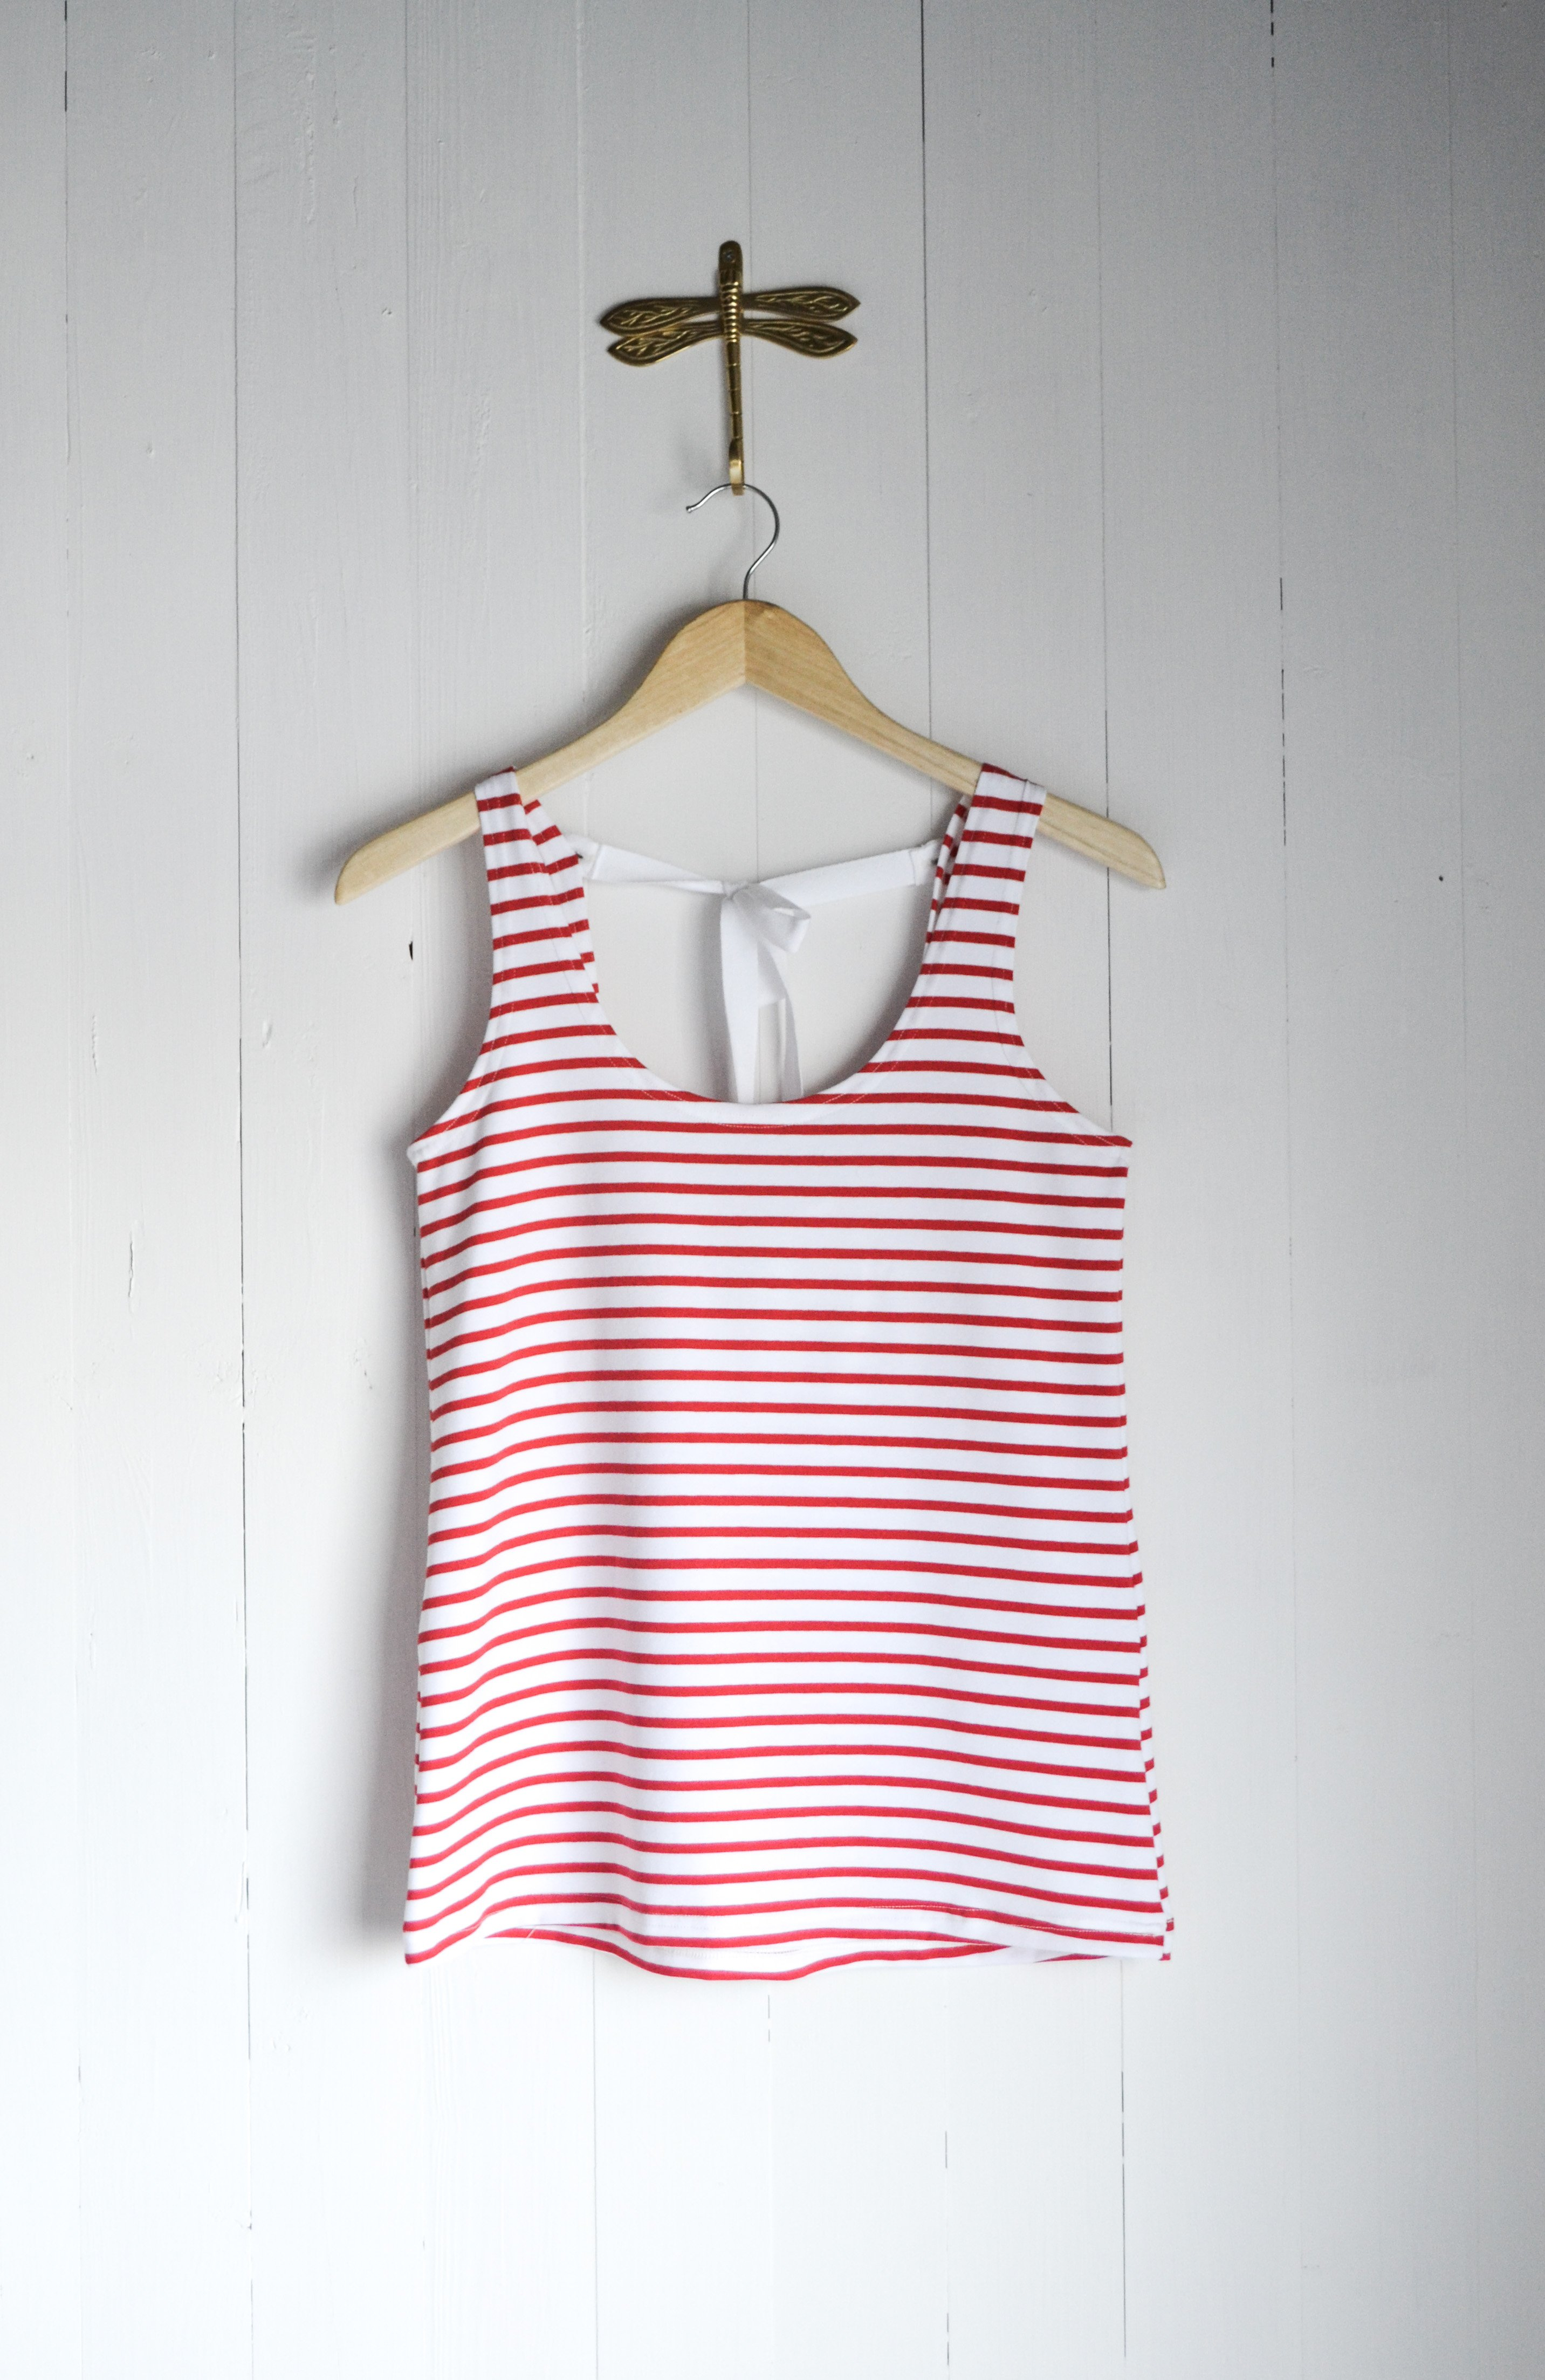 SHIFTING TANK TOP - RED AND WHITE STIRPES